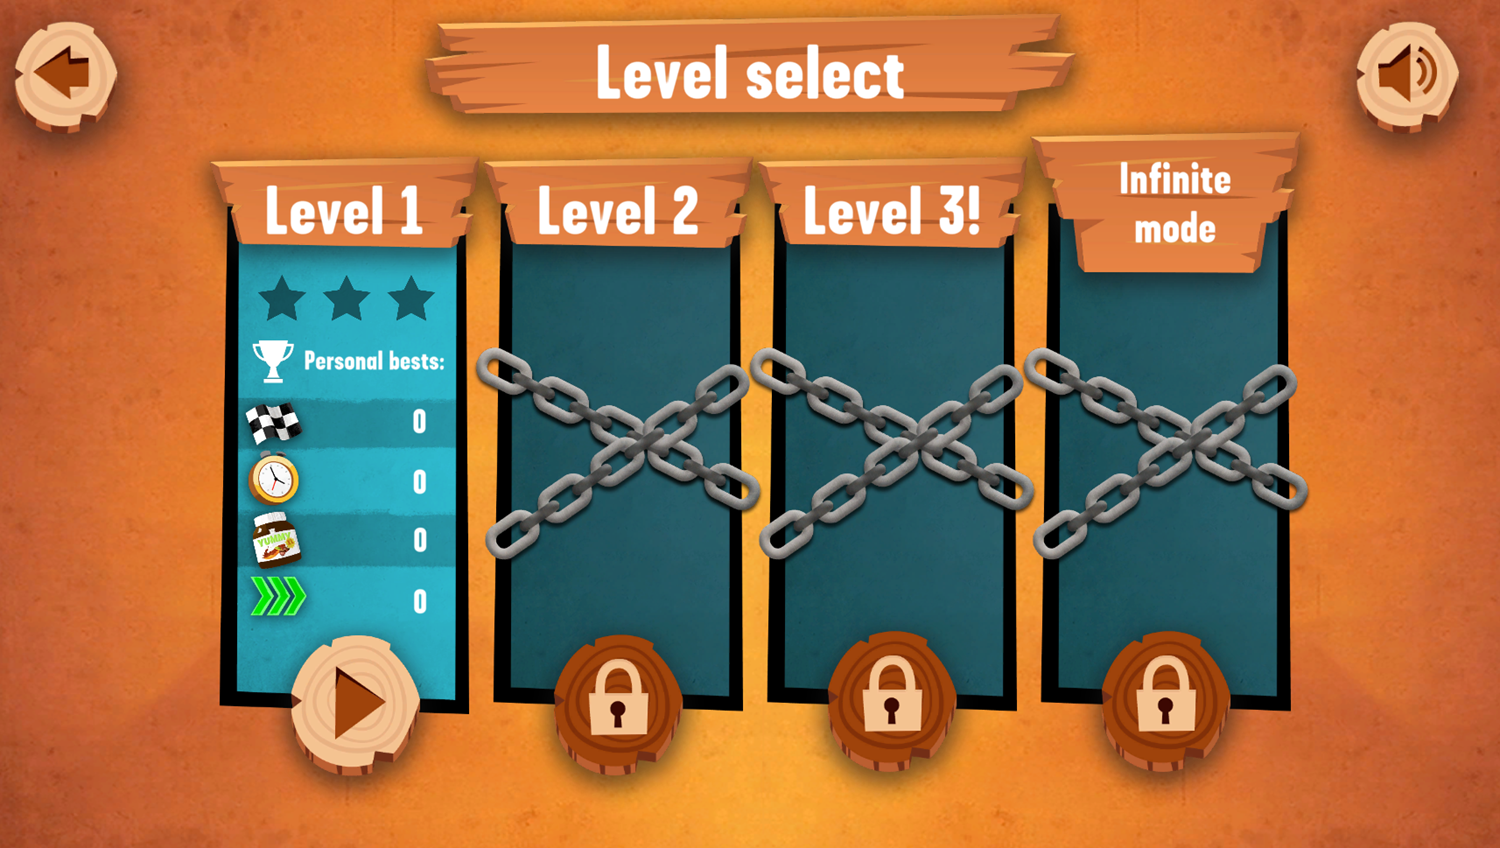 Grizzy and the Lemmings Yummy Run Game Level Select Screenshot.